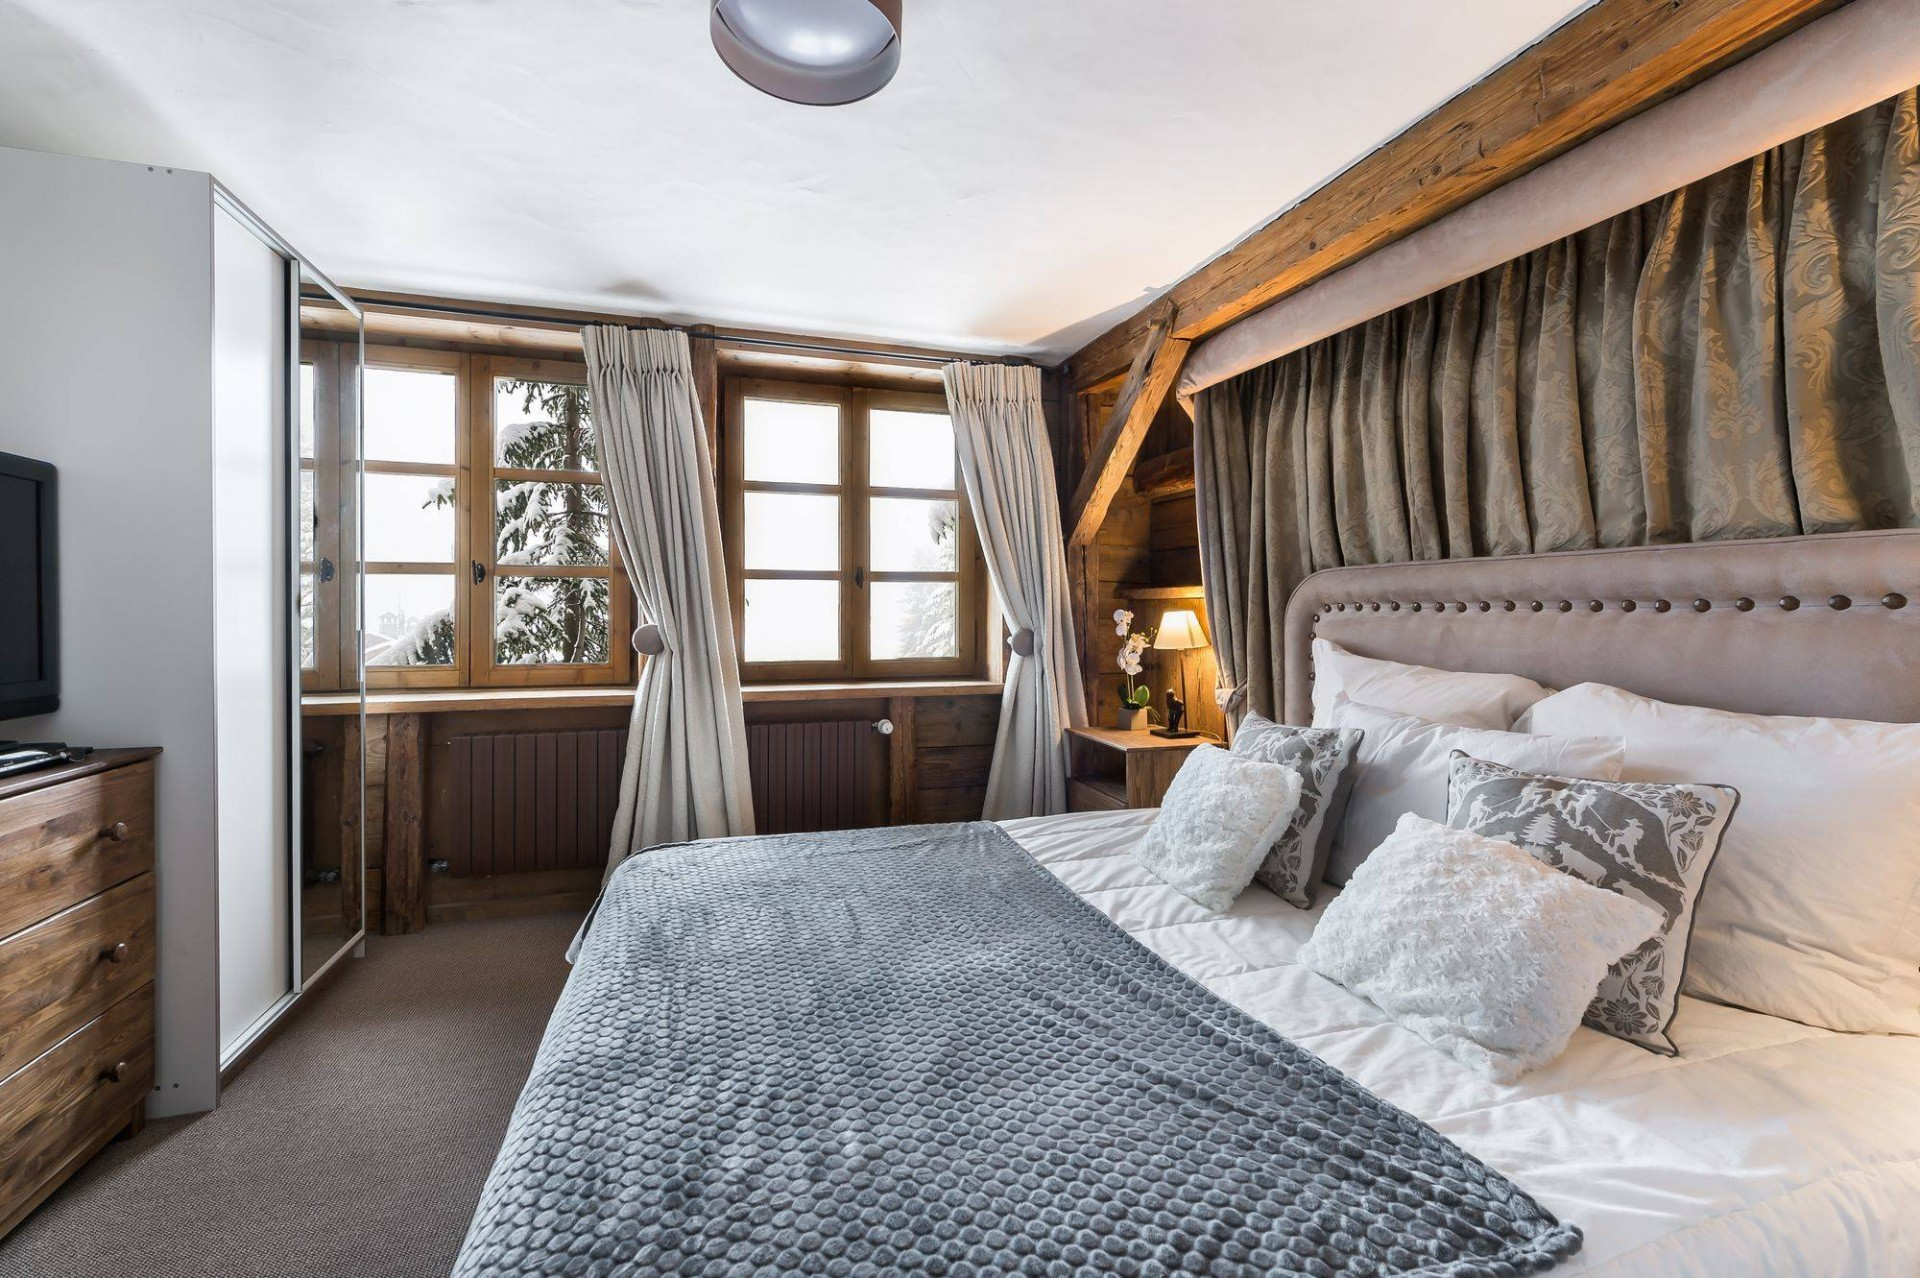 Courchevel 1850 Location Chalet Luxe Tazuy Chambre 4